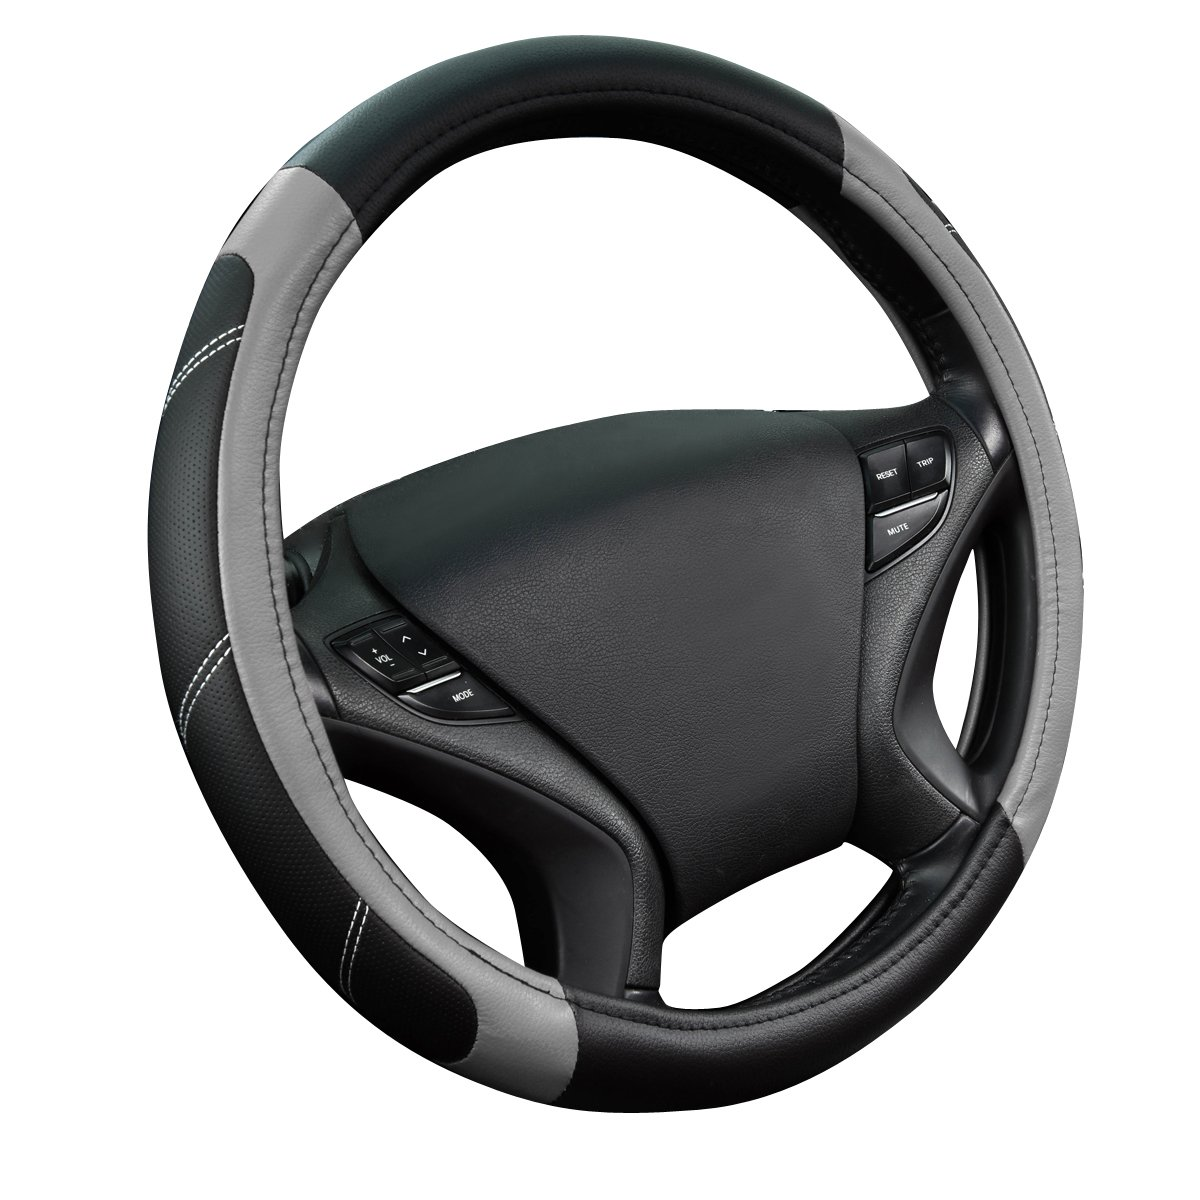 NEW ARRIVAL- CAR PASS Line Rider Leather Universal Steering Wheel Cover fits for Truck, Suv, Cars (Black with red color) LJ